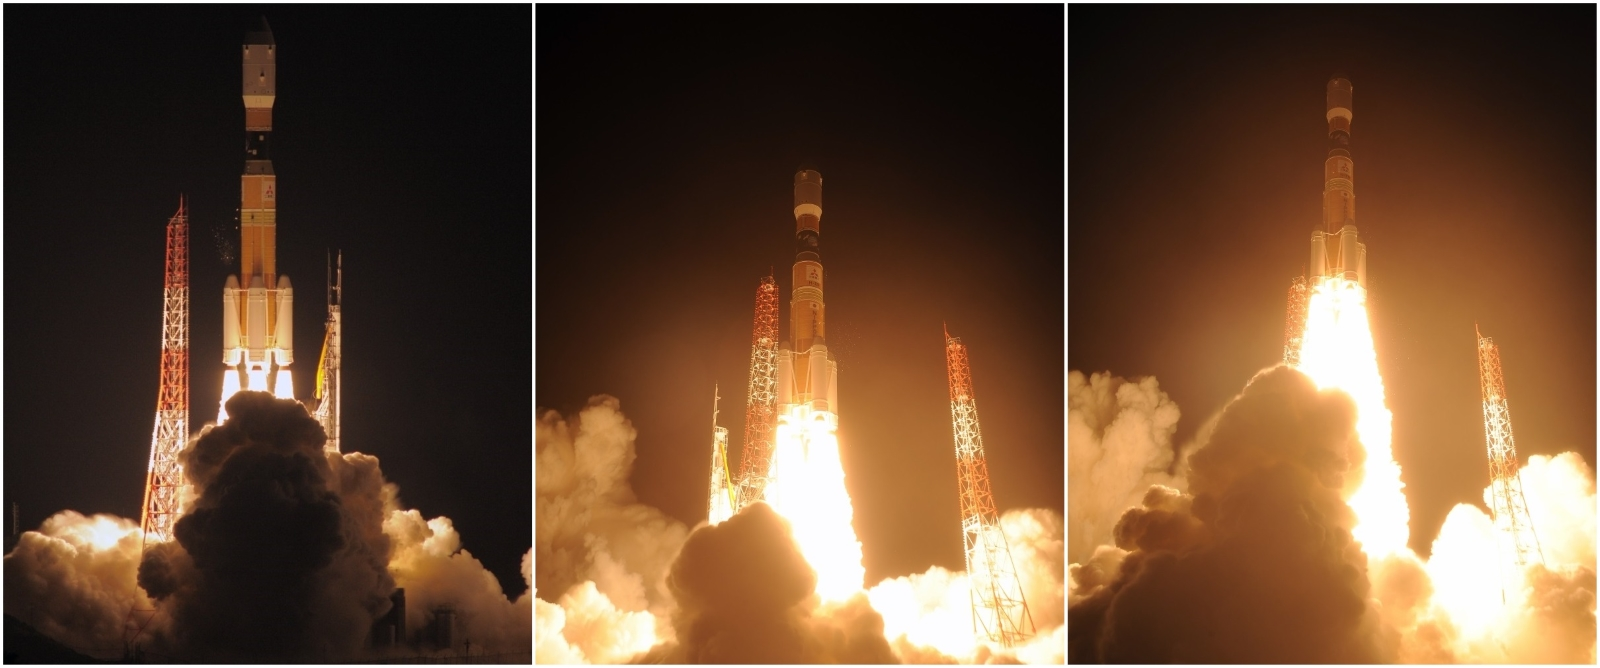 H-IIB / HTV-5 launch collage